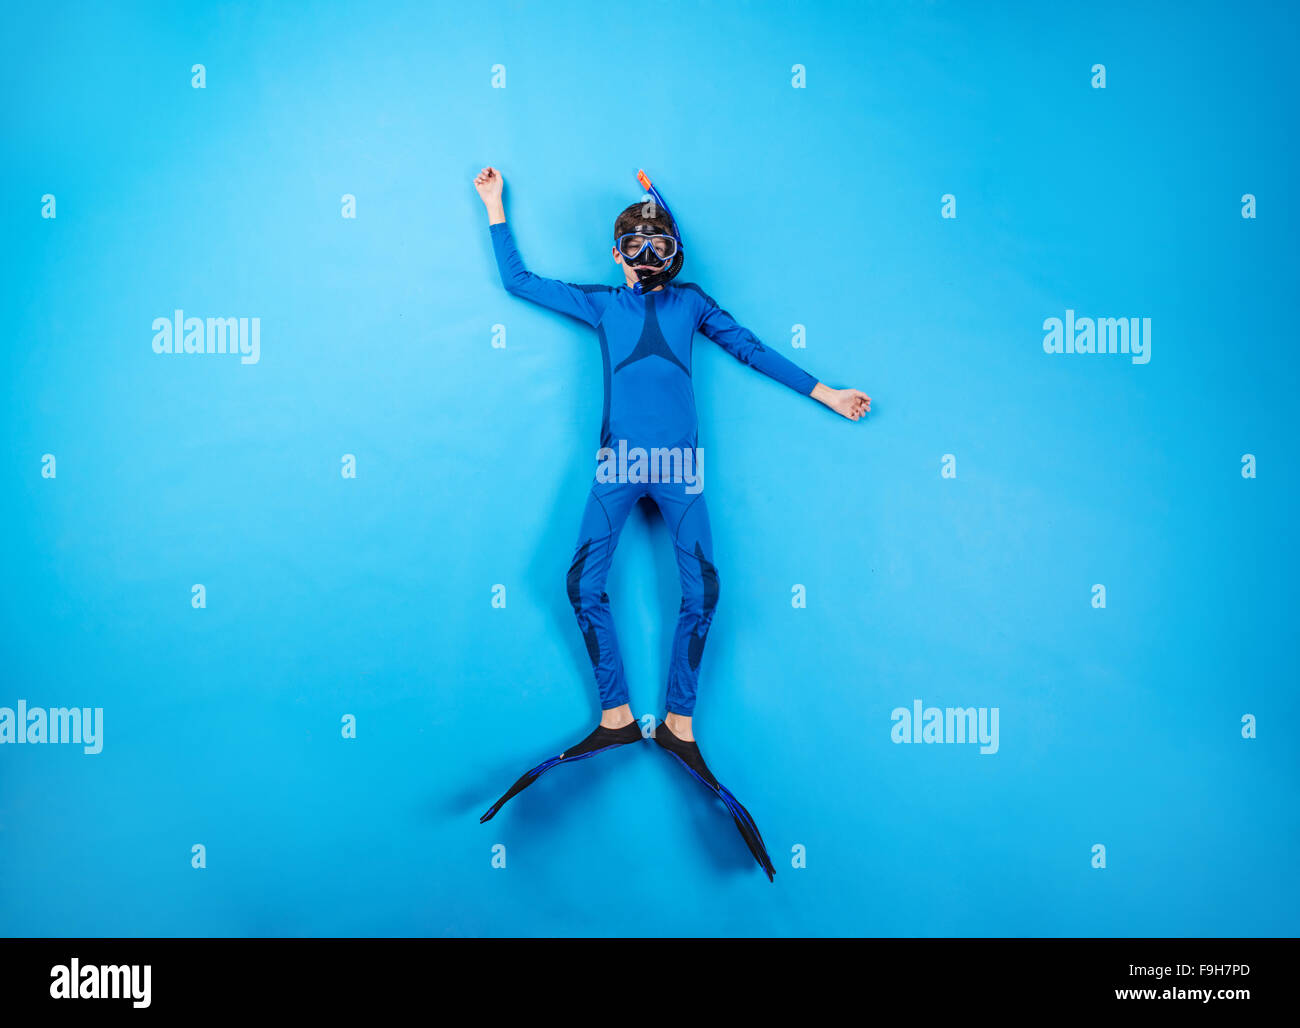 Children scuba diving deep in the sea. Studio shot on a blue background. - Stock Image